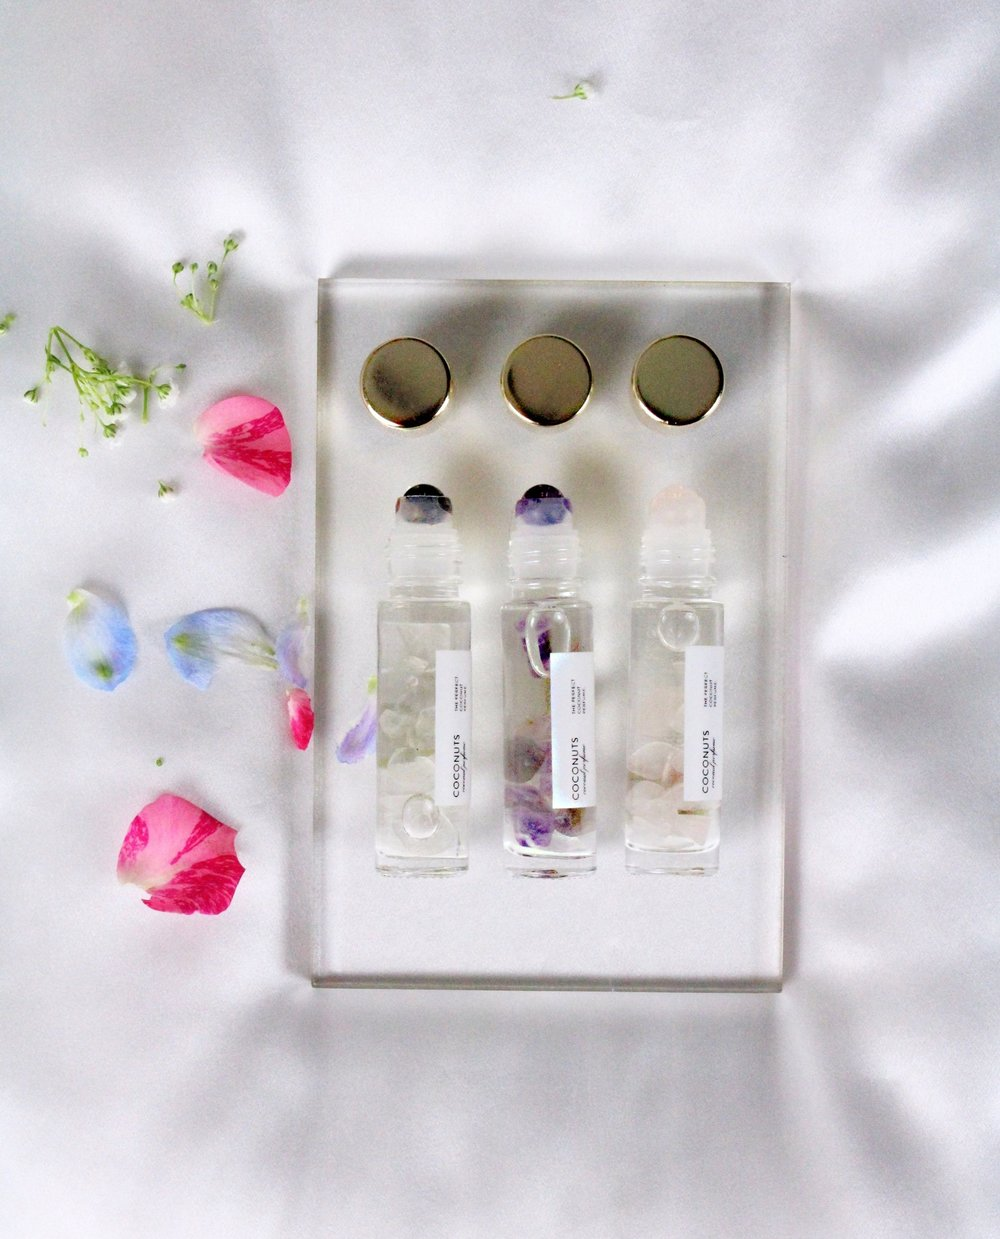 "For friend love - St. Valentine (you, in this scenario) wore an amethyst engraved with the image of his loyal assistant, Cupid (your friend, in this scenario). Amethyst is synonymous with February and Valentine's Day, so it's makes sense you'd want to honor your friendship with Sunday Forever's Coconuts Perfume Gemstone Rollerball Set. A set of three Coconuts Perfume Rollerballs (1 Amethyst, 1 Rose Quartz and 1 Tiger's Eye) made even more magical with tiny floating crystals! Give them all to your loyal sidekick or hand them out like you're Oprah (""YOU get a rollerball and YOU get a rollerball!"")."